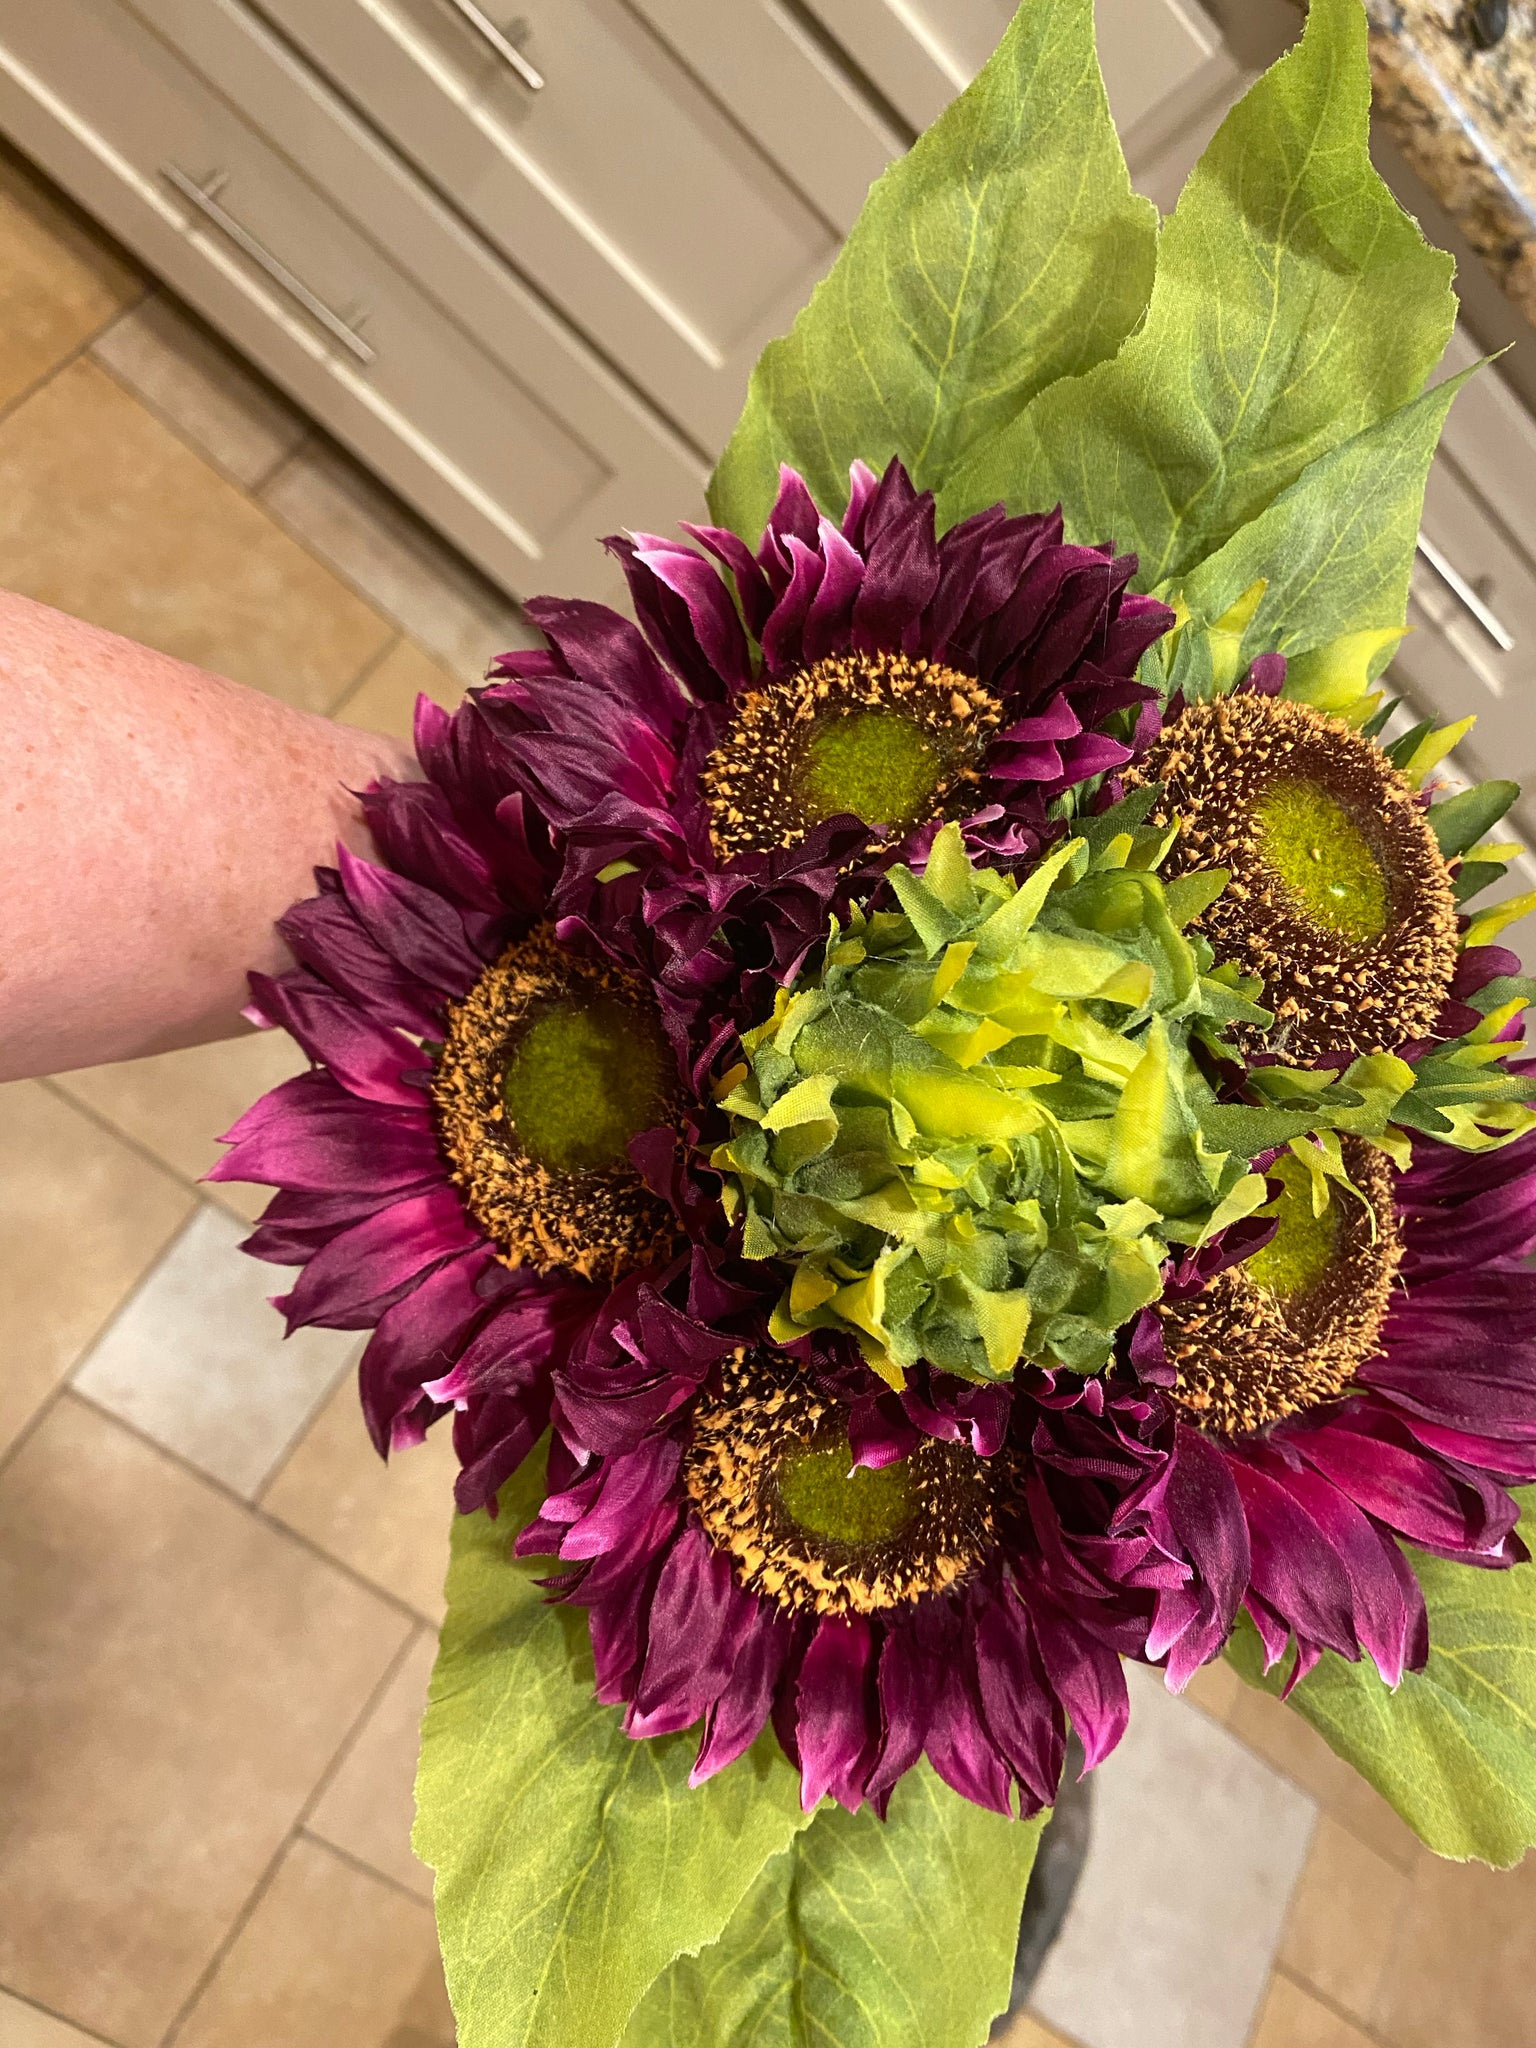 Deluxe Purple (Eggplant) Sunflower Bouquet